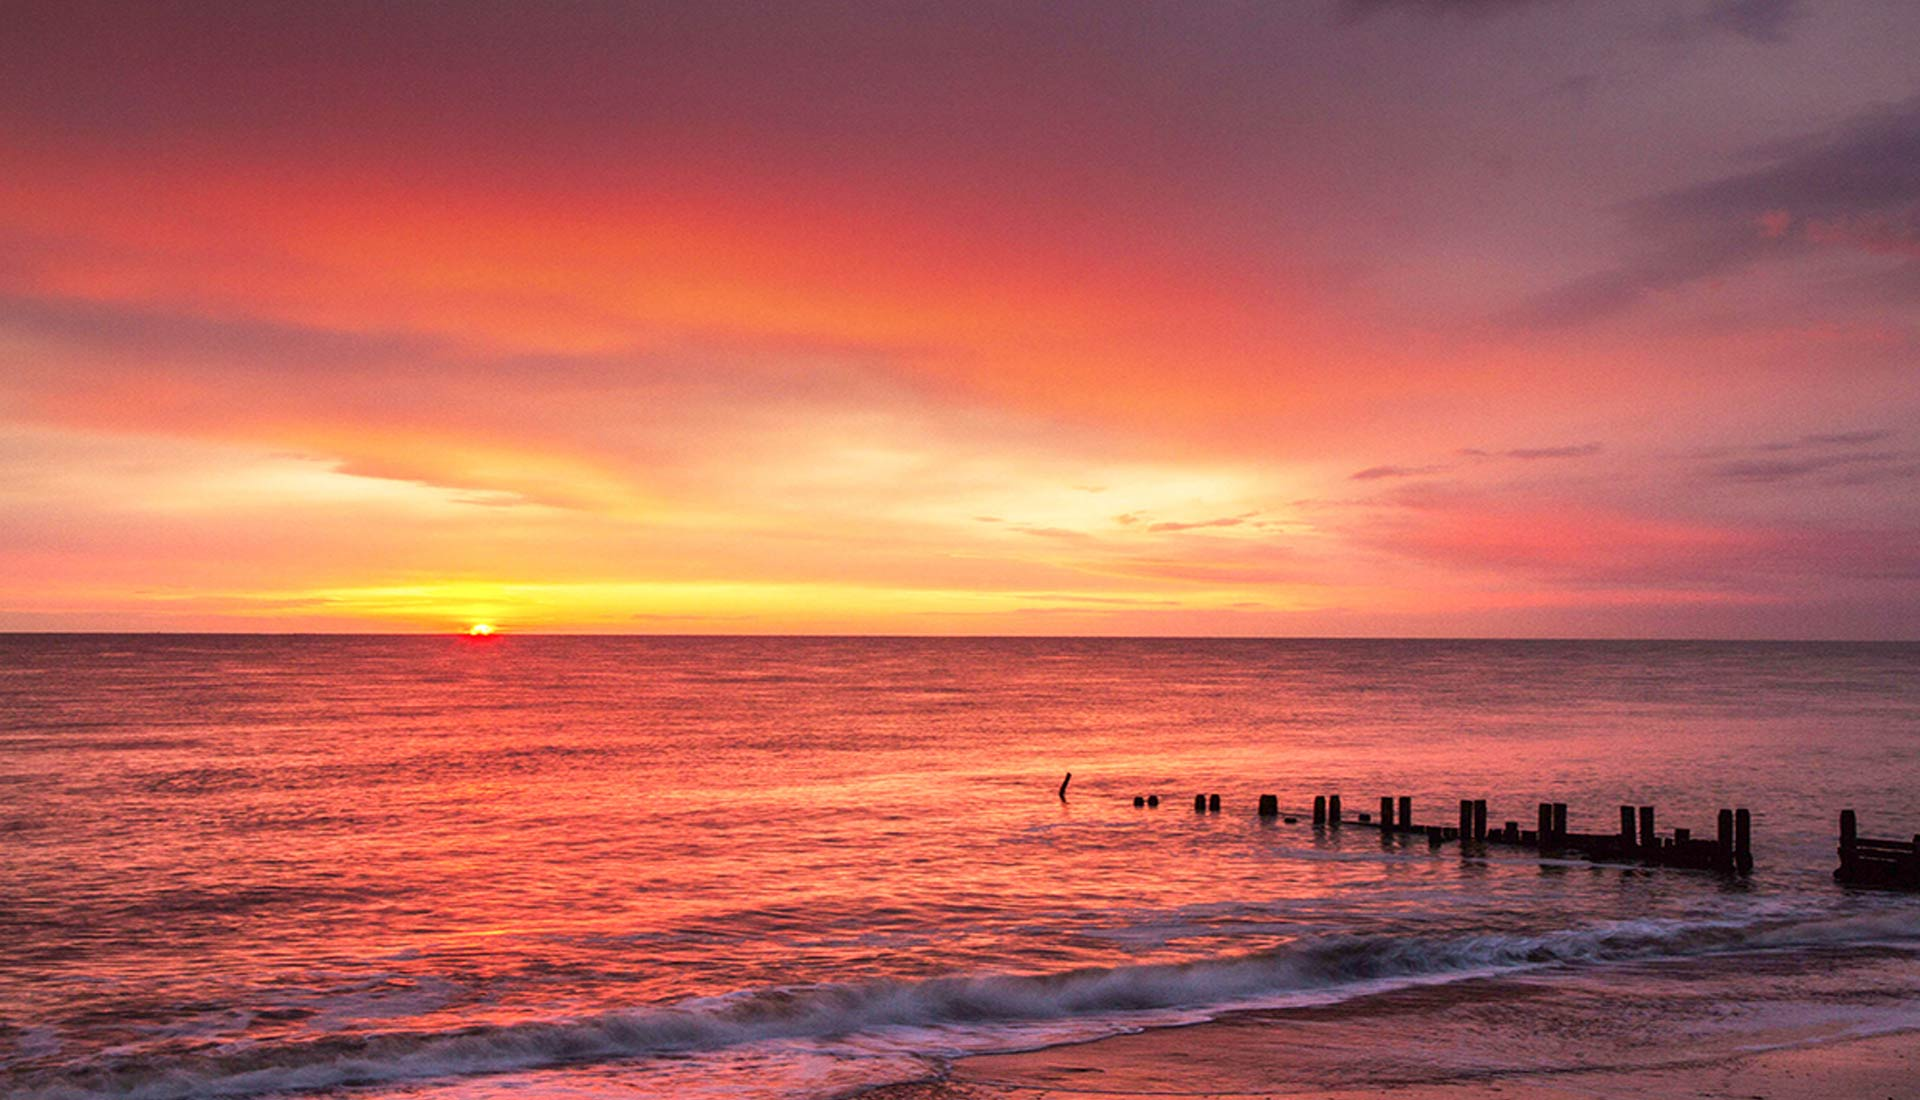 Sunrise at Mundesley Beach, North Norfolk